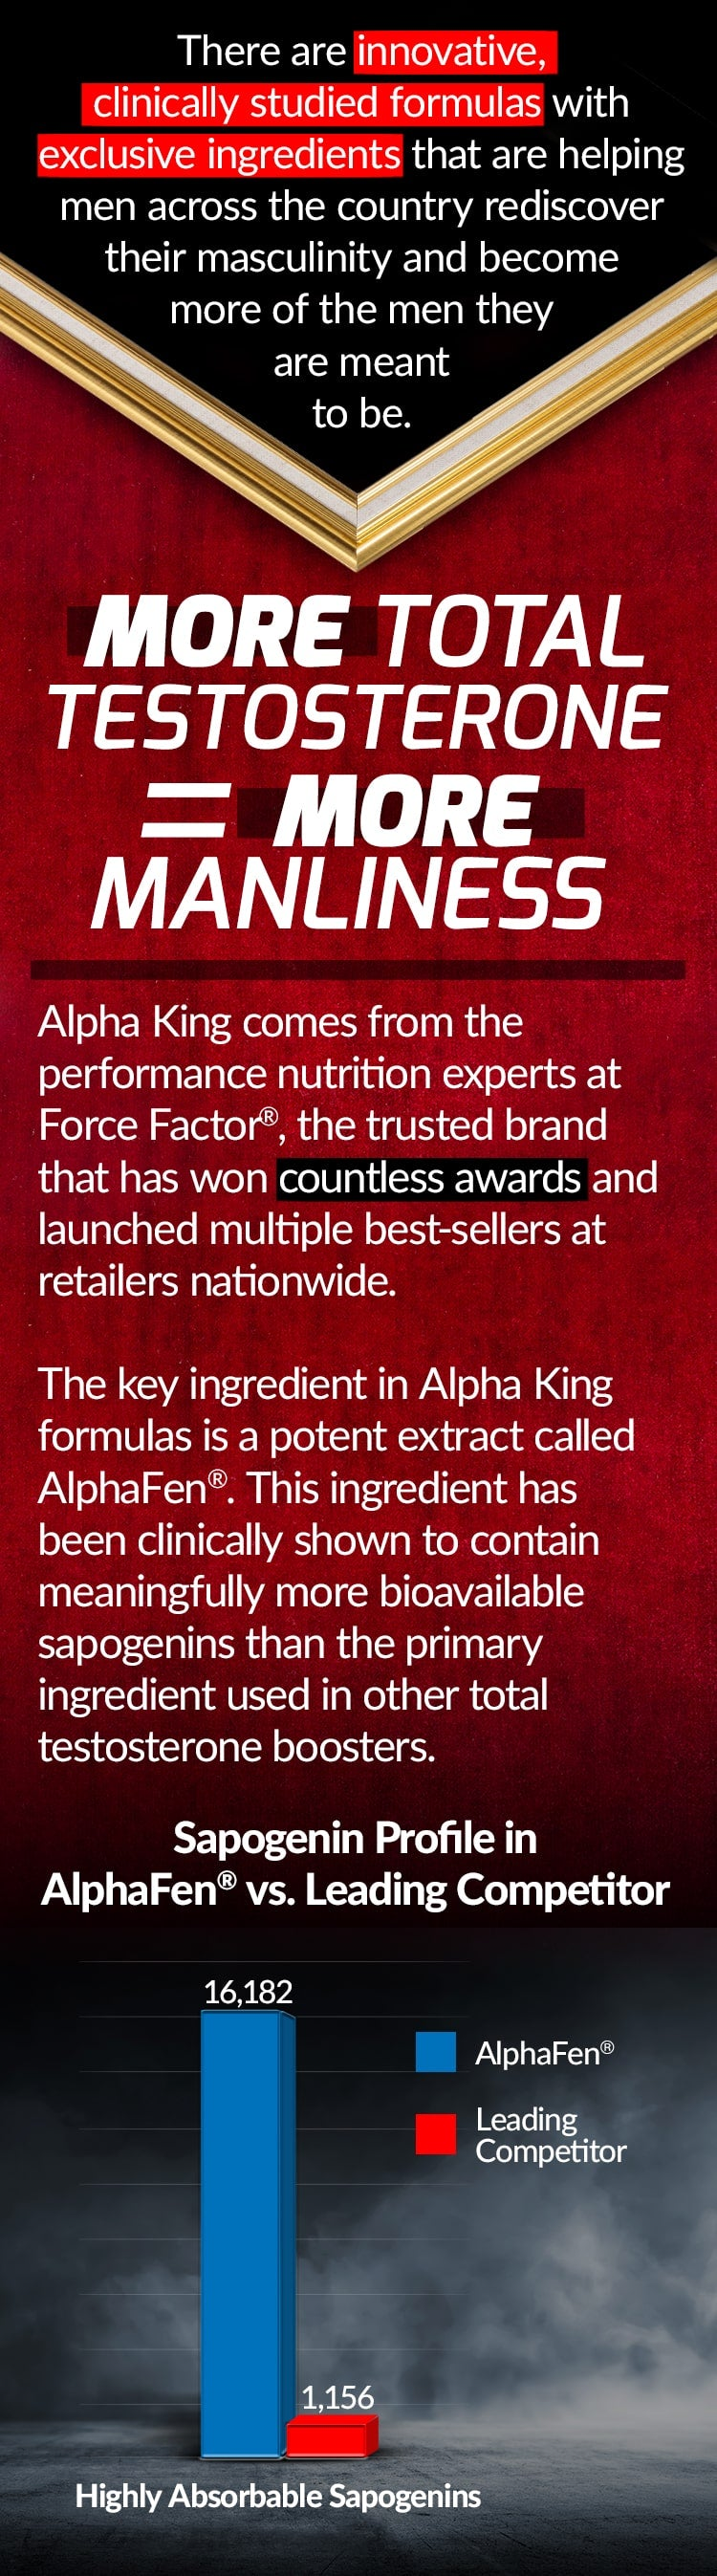 There are innovative, clinically studied formulas with exclusive ingredients that are helping men across the country rediscover their masculinity and become more of the men they are meant to be. MORE TOTAL TESTOSTERONE FOR MORE MANLINESS. Alpha King comes from the performance nutrition experts at Force Factor®, the trusted brand that has won countless awards and launched multiple best-sellers at retailers nationwide. The key ingredient in Alpha King formulas is a potent extract called AlphaFen®. This ingredient has been clinically shown to contain meaningfully more bioavailable sapogenins than the primary ingredient used in other total testosterone boosters.